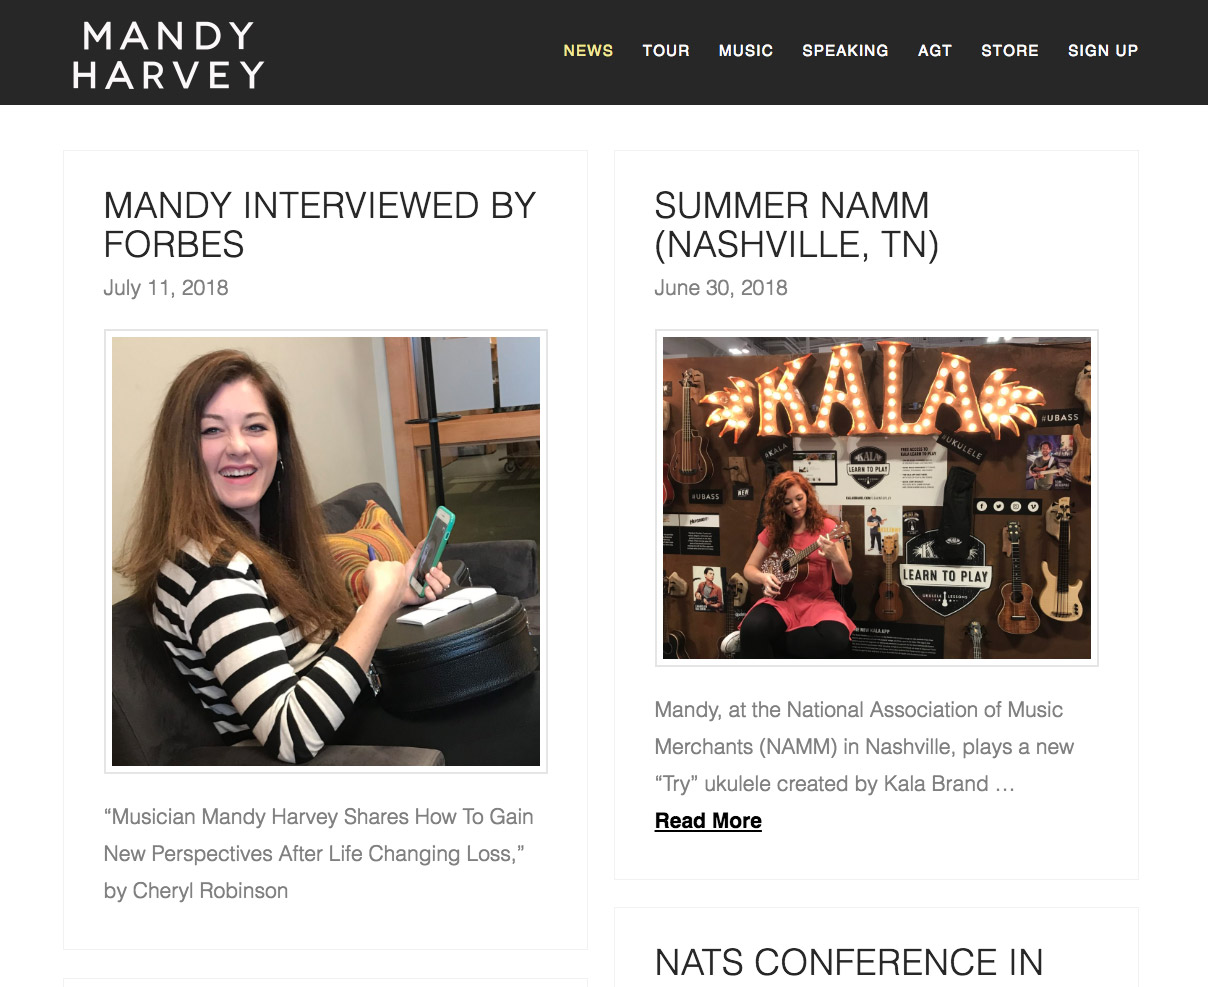 mandy harvey website screenshot of news